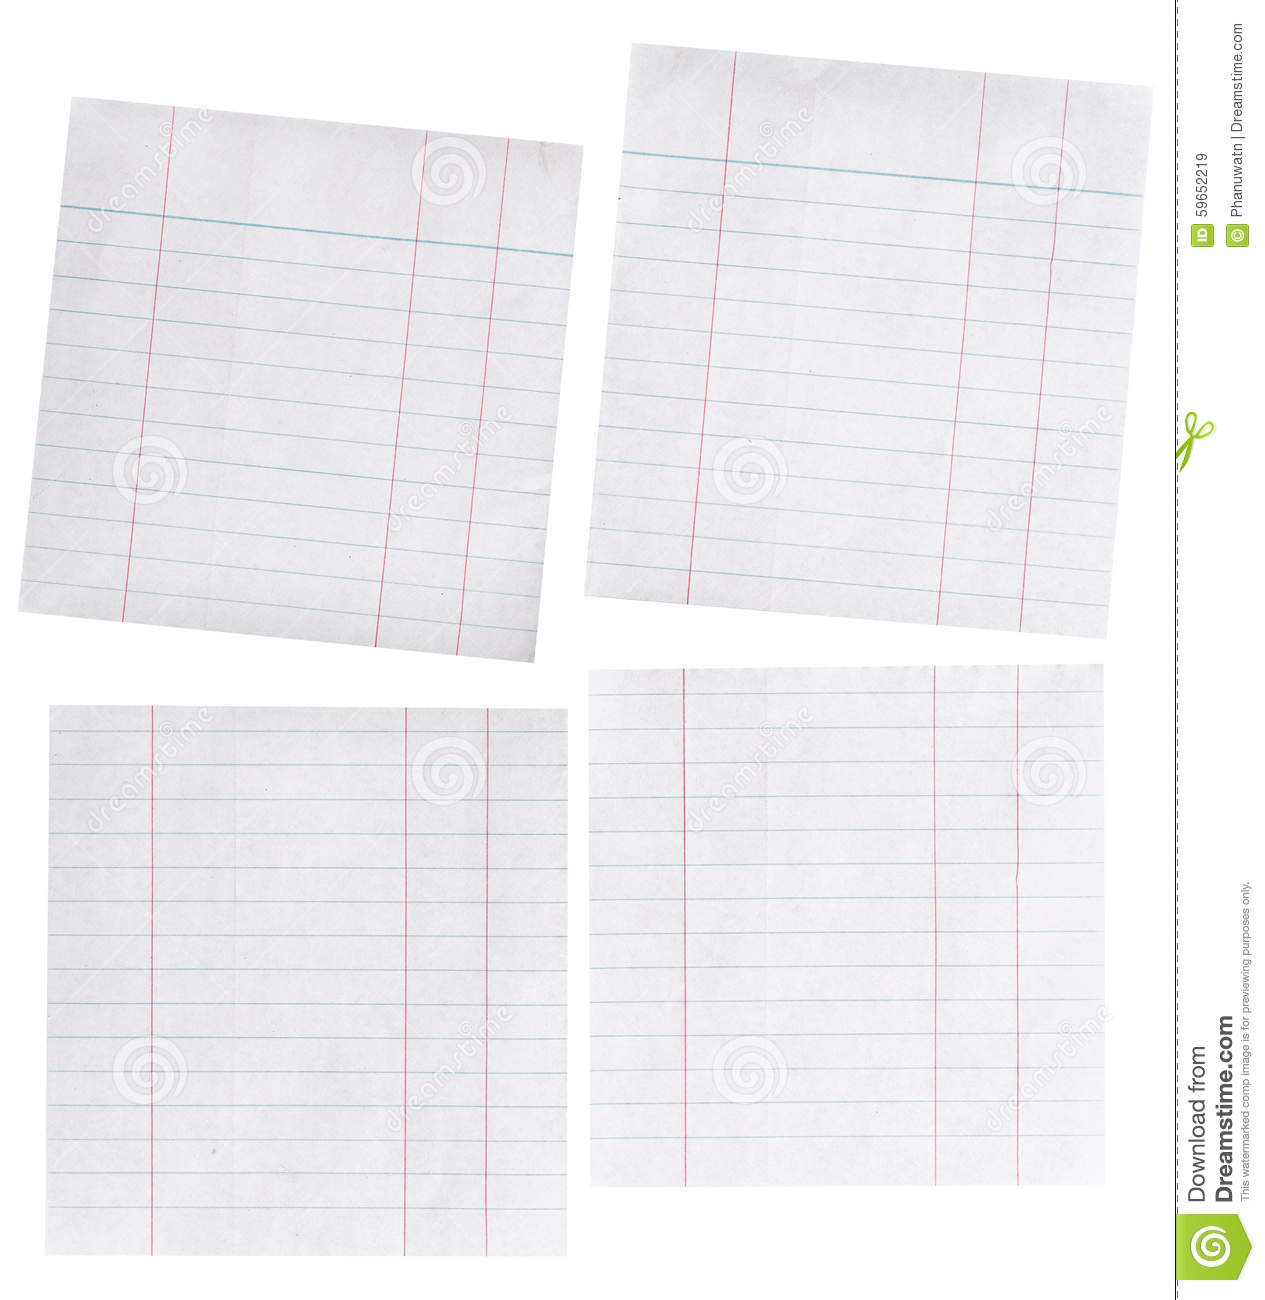 Piece of lined paper